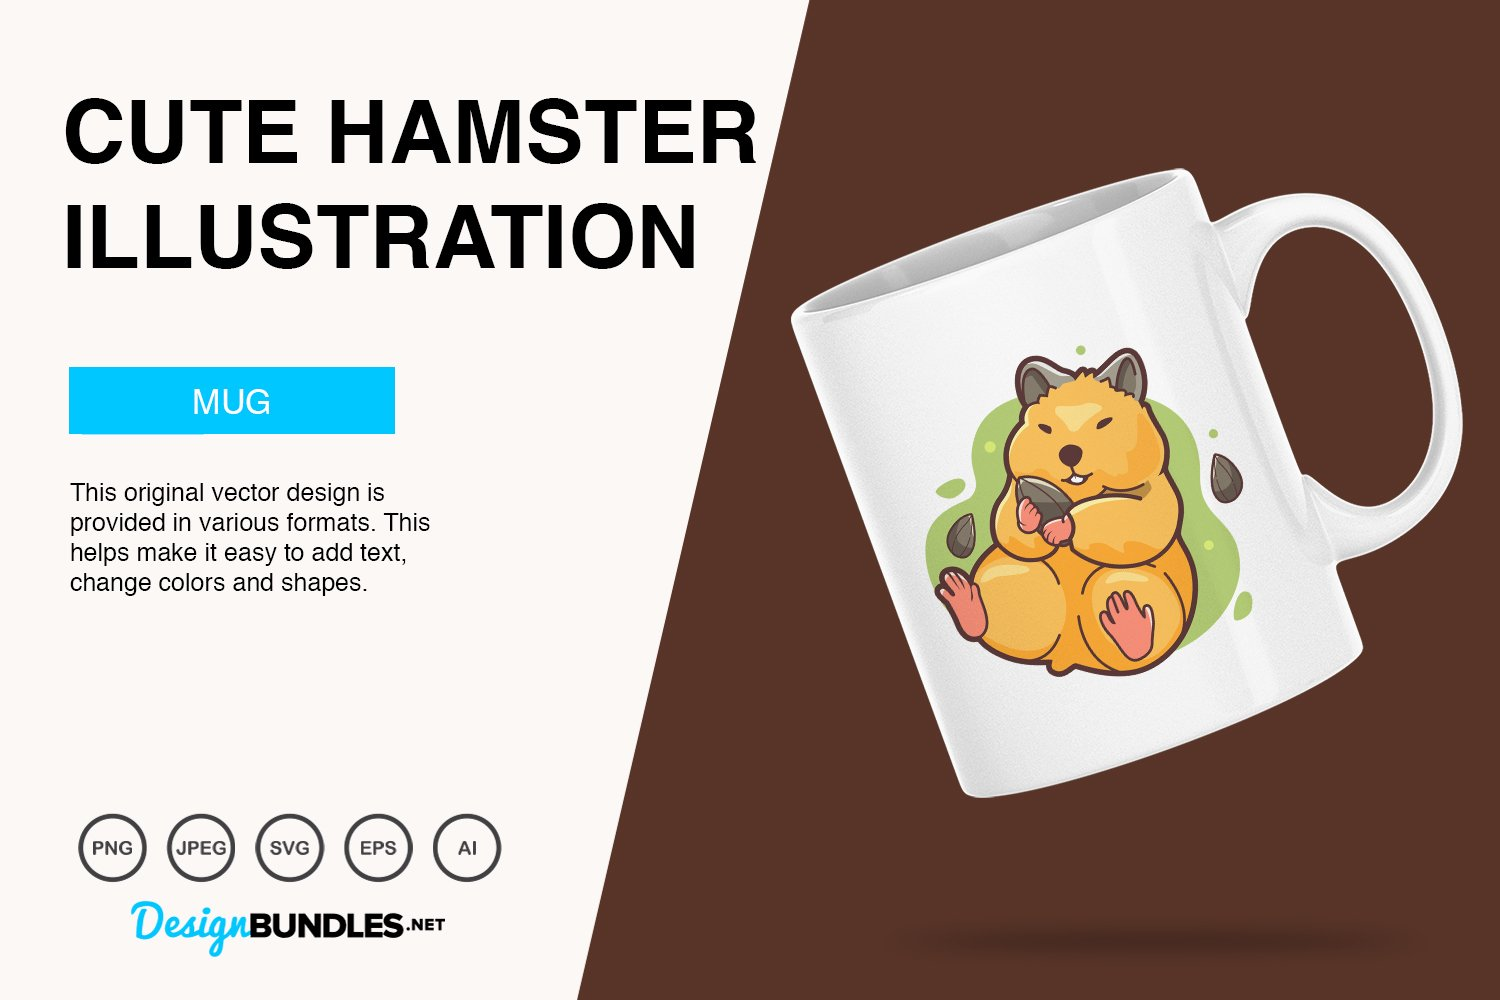 Cute Hamster Vector Illustration example image 2